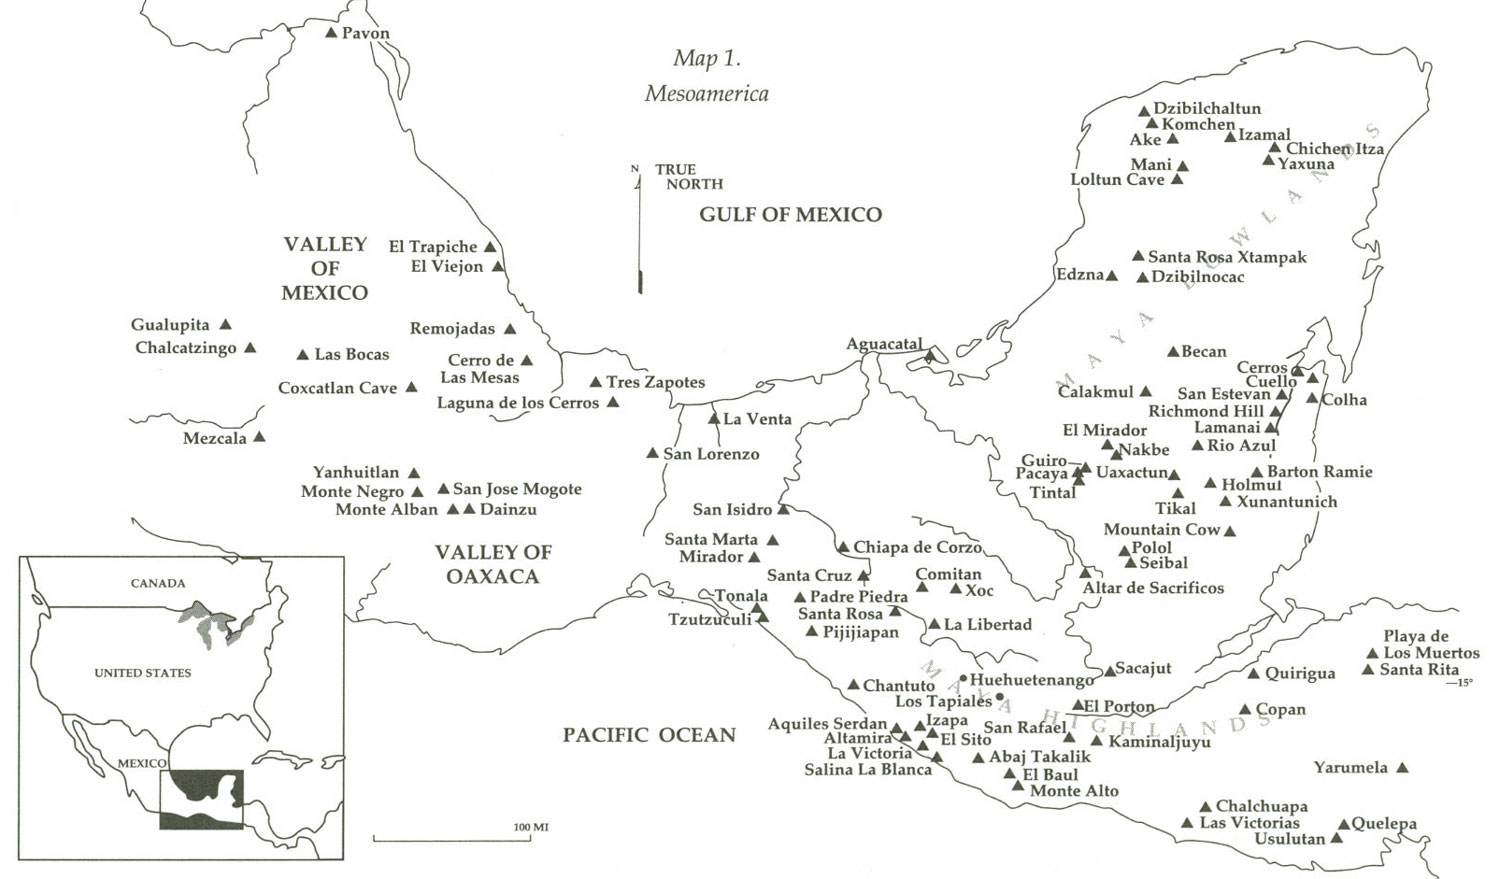 Mesoamerica [Map 1.]